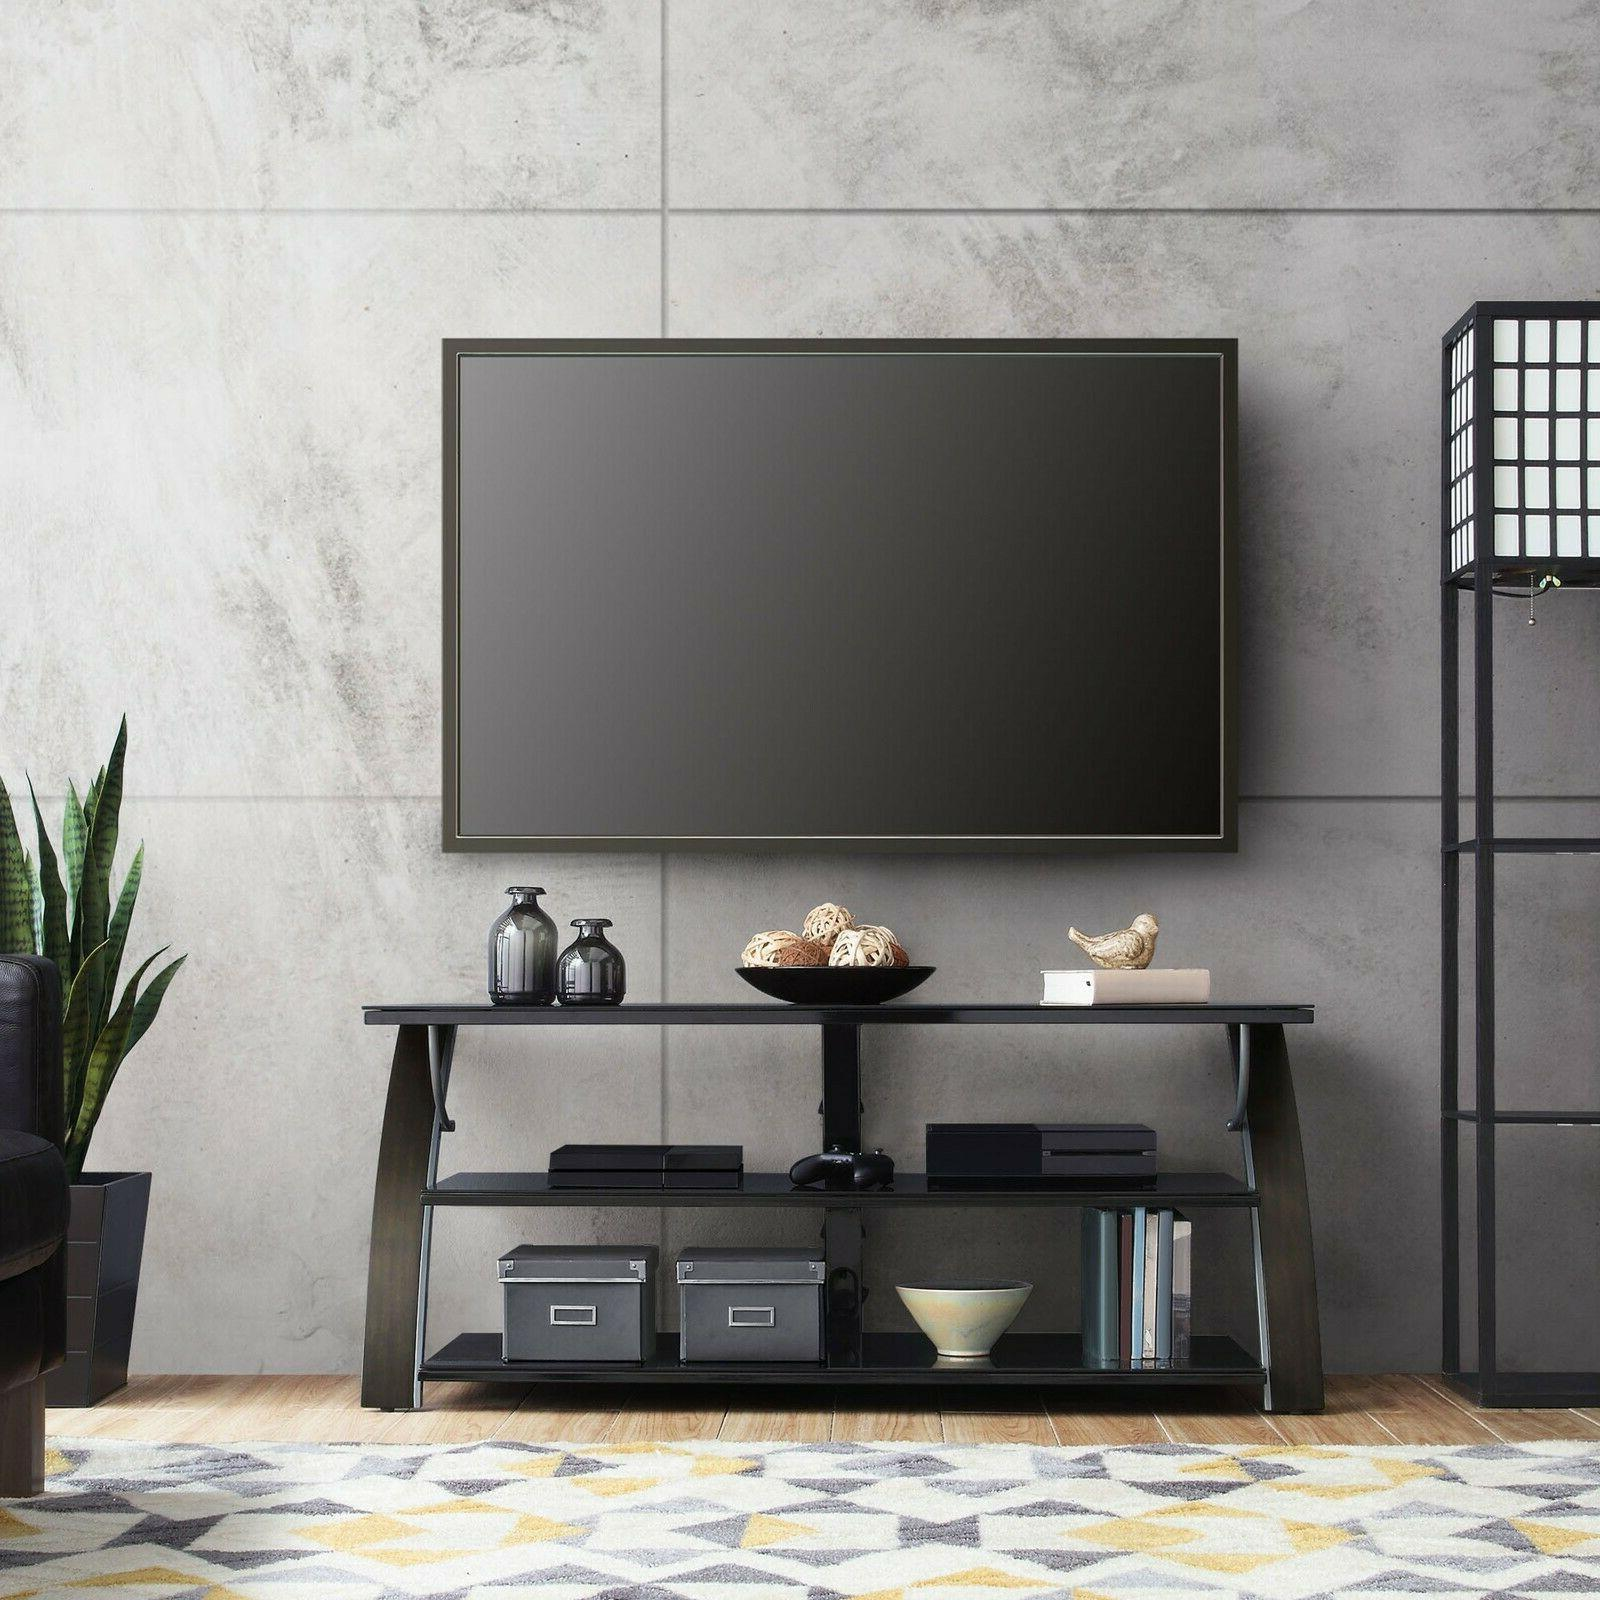 Flat 3-in-1 Stand Mount Housing TVs Mounted